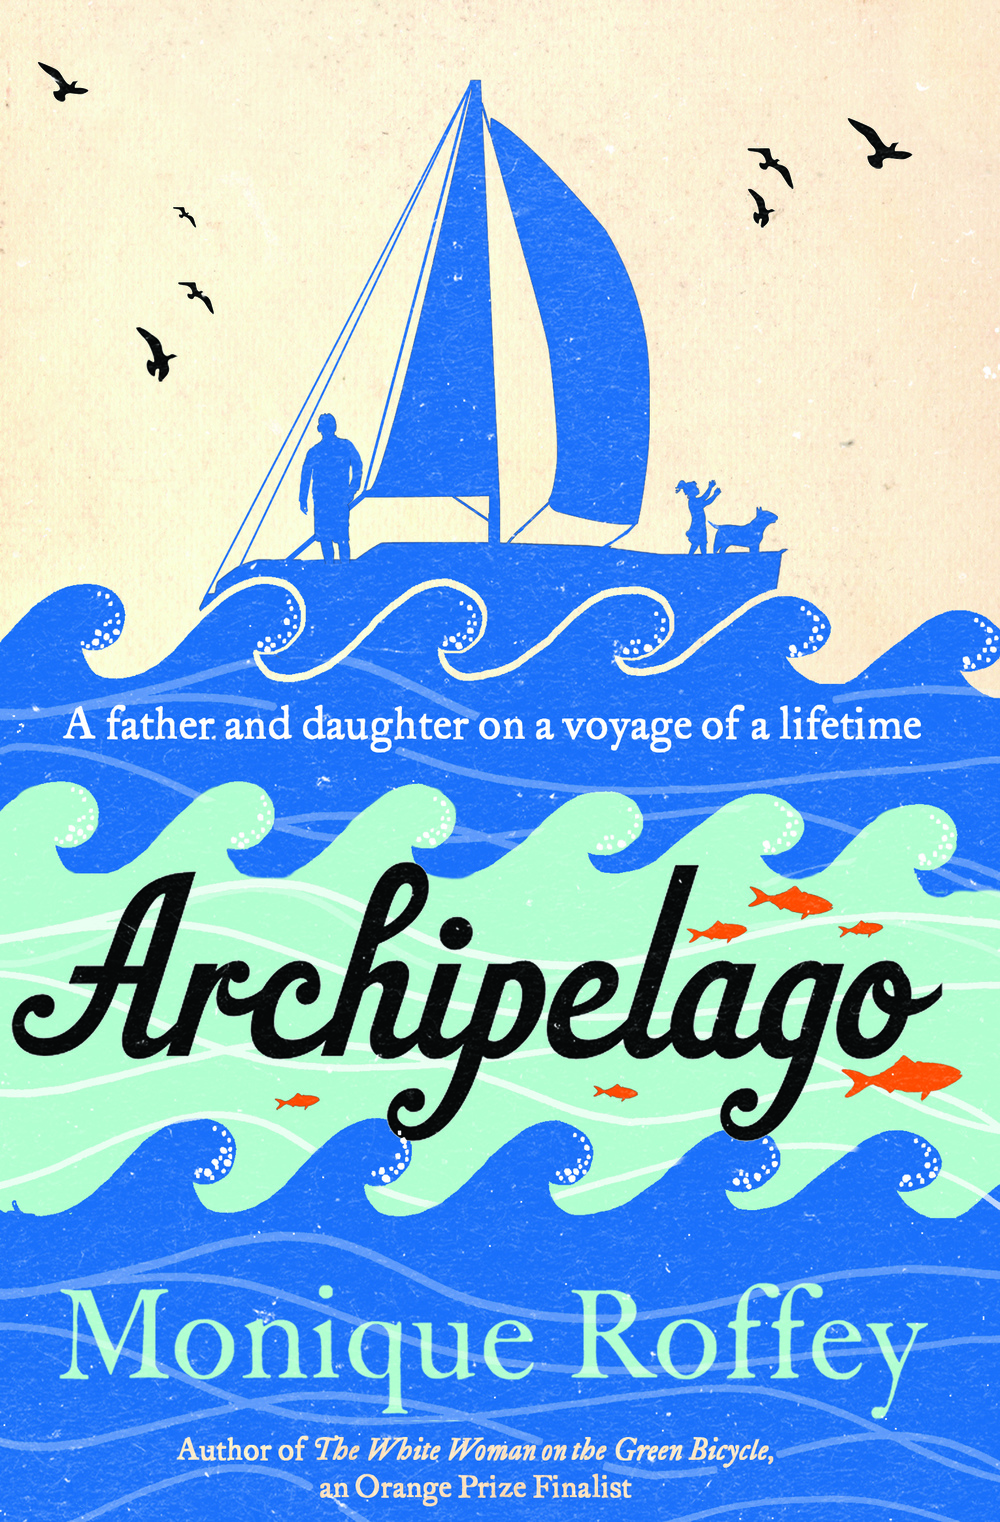 ARCHIPELAGO by Monique Roffey, US: Penguin